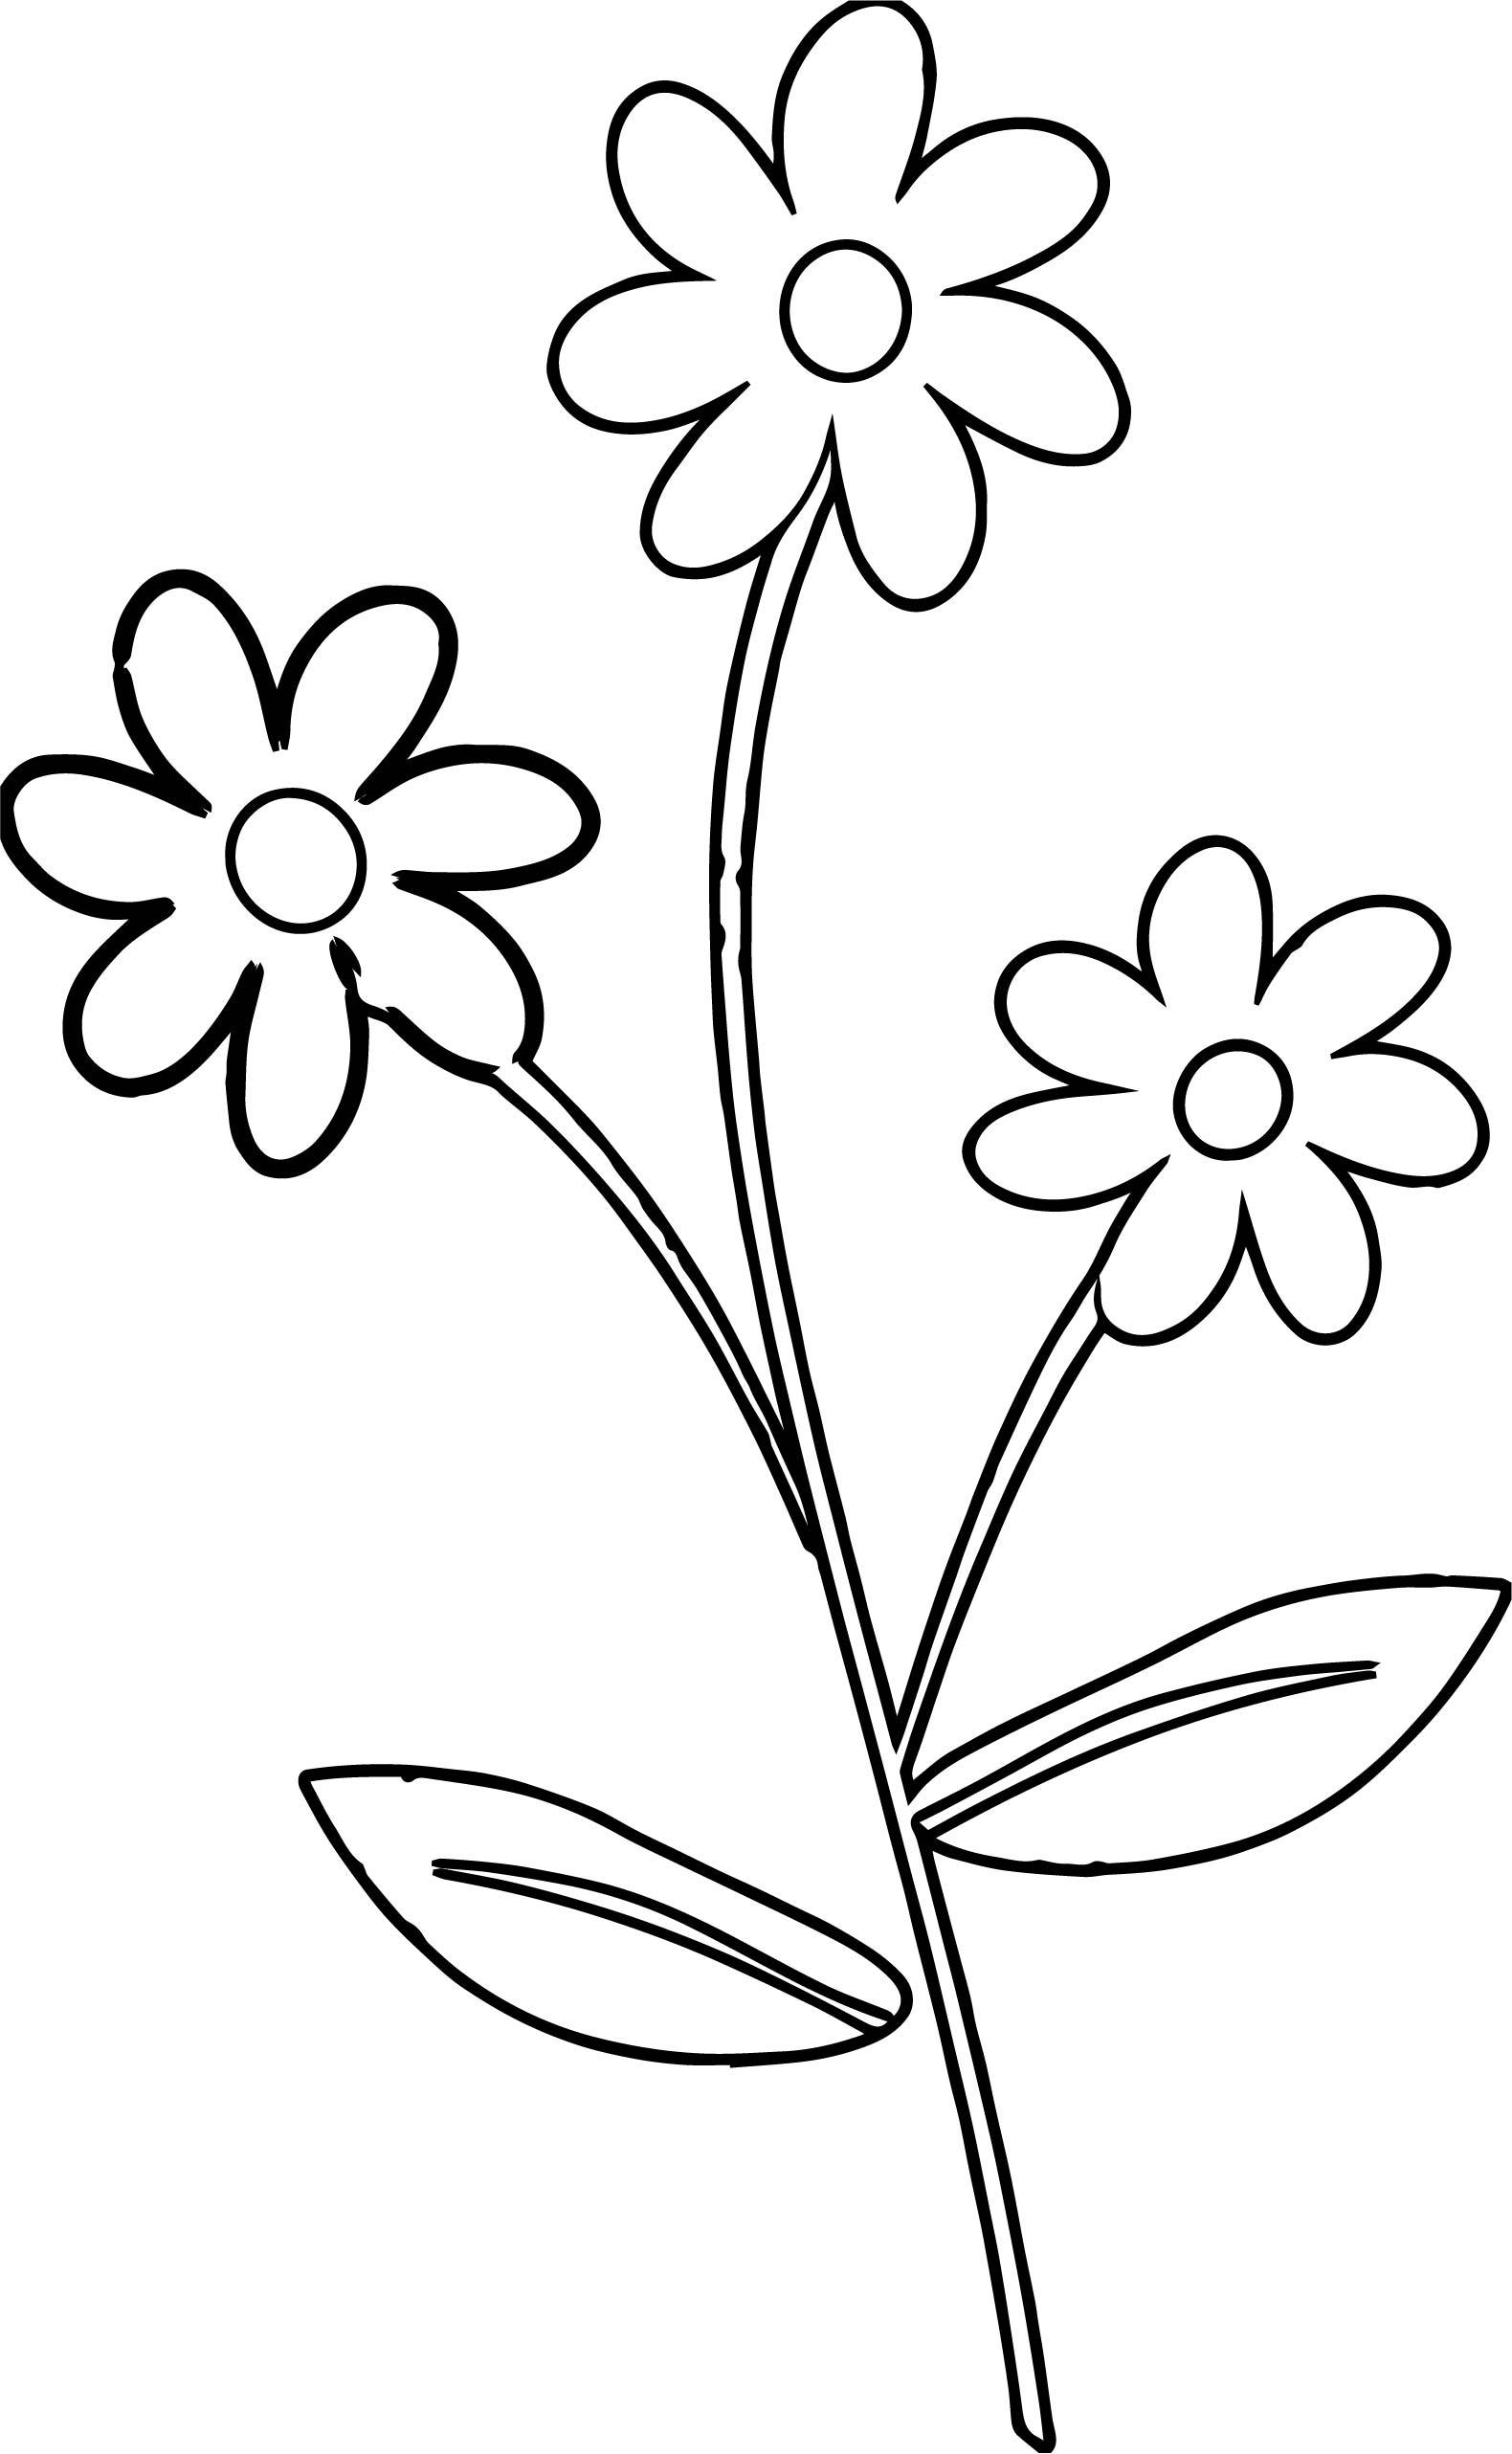 1580x2564 Marvelous Cute Flower Border Coloring Page Wecoloringpage Pict